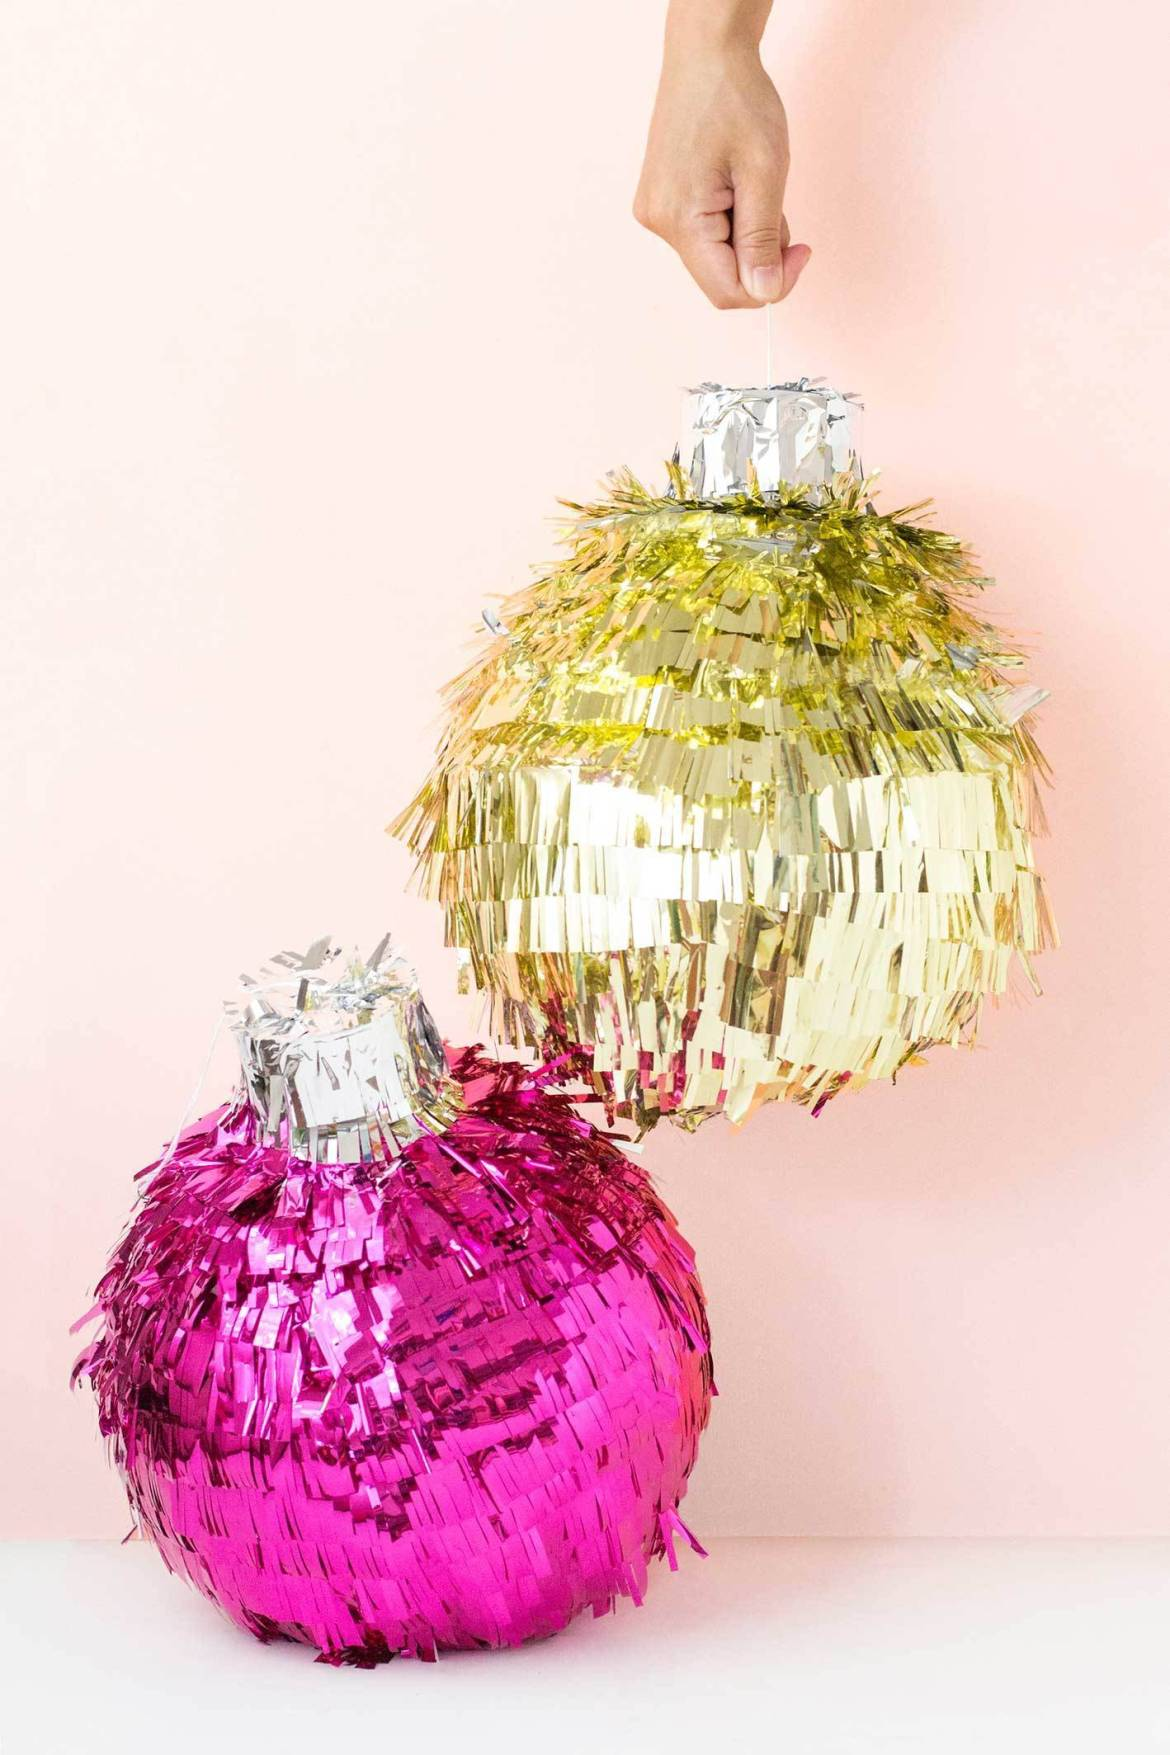 Get ready for Christmas with this DIY festive bauble piñata!